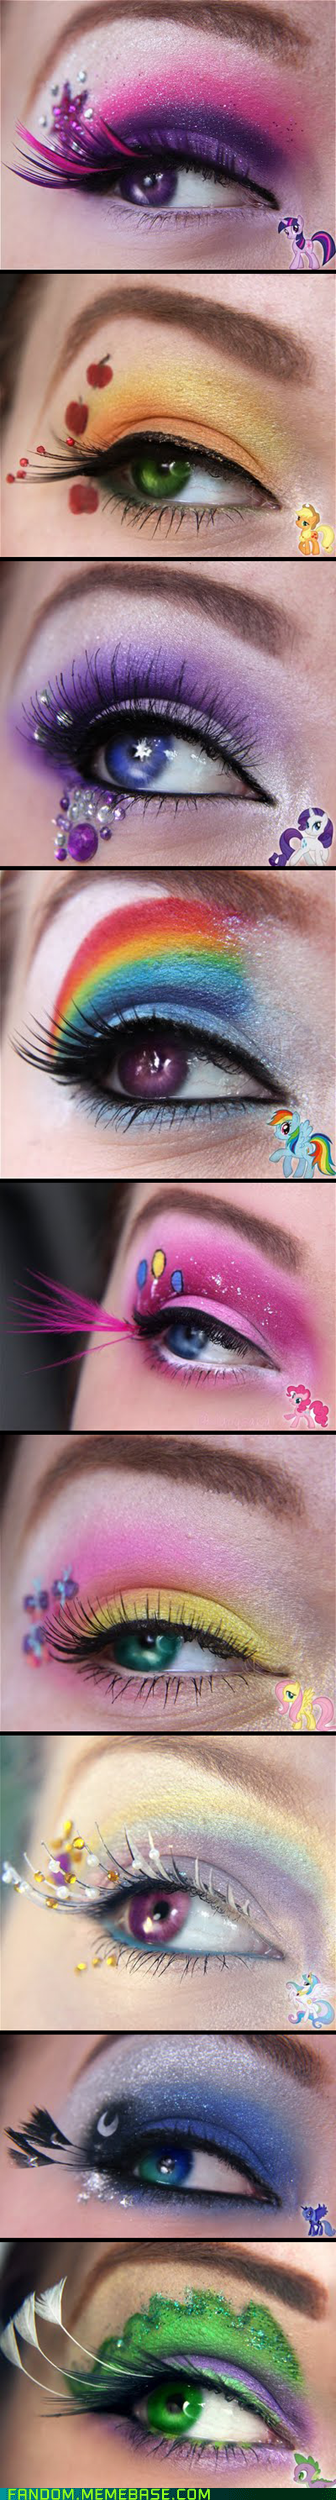 best of week Bronies cosplay makeup my little pony - 5591144704